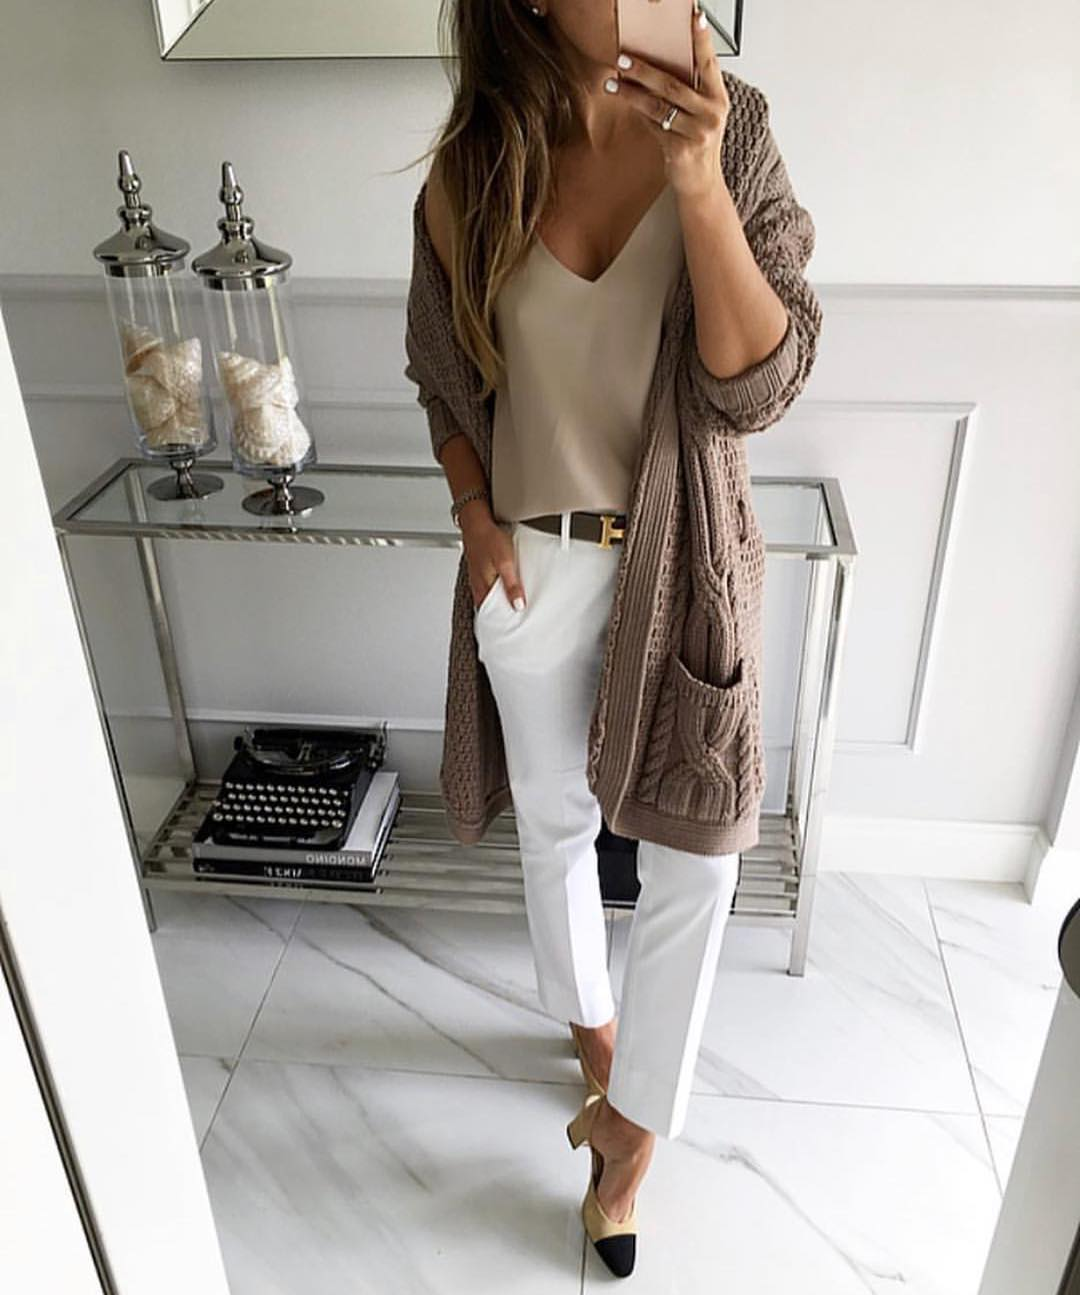 Long Beige Cardigan And Tailored White Pants For Fall 2019